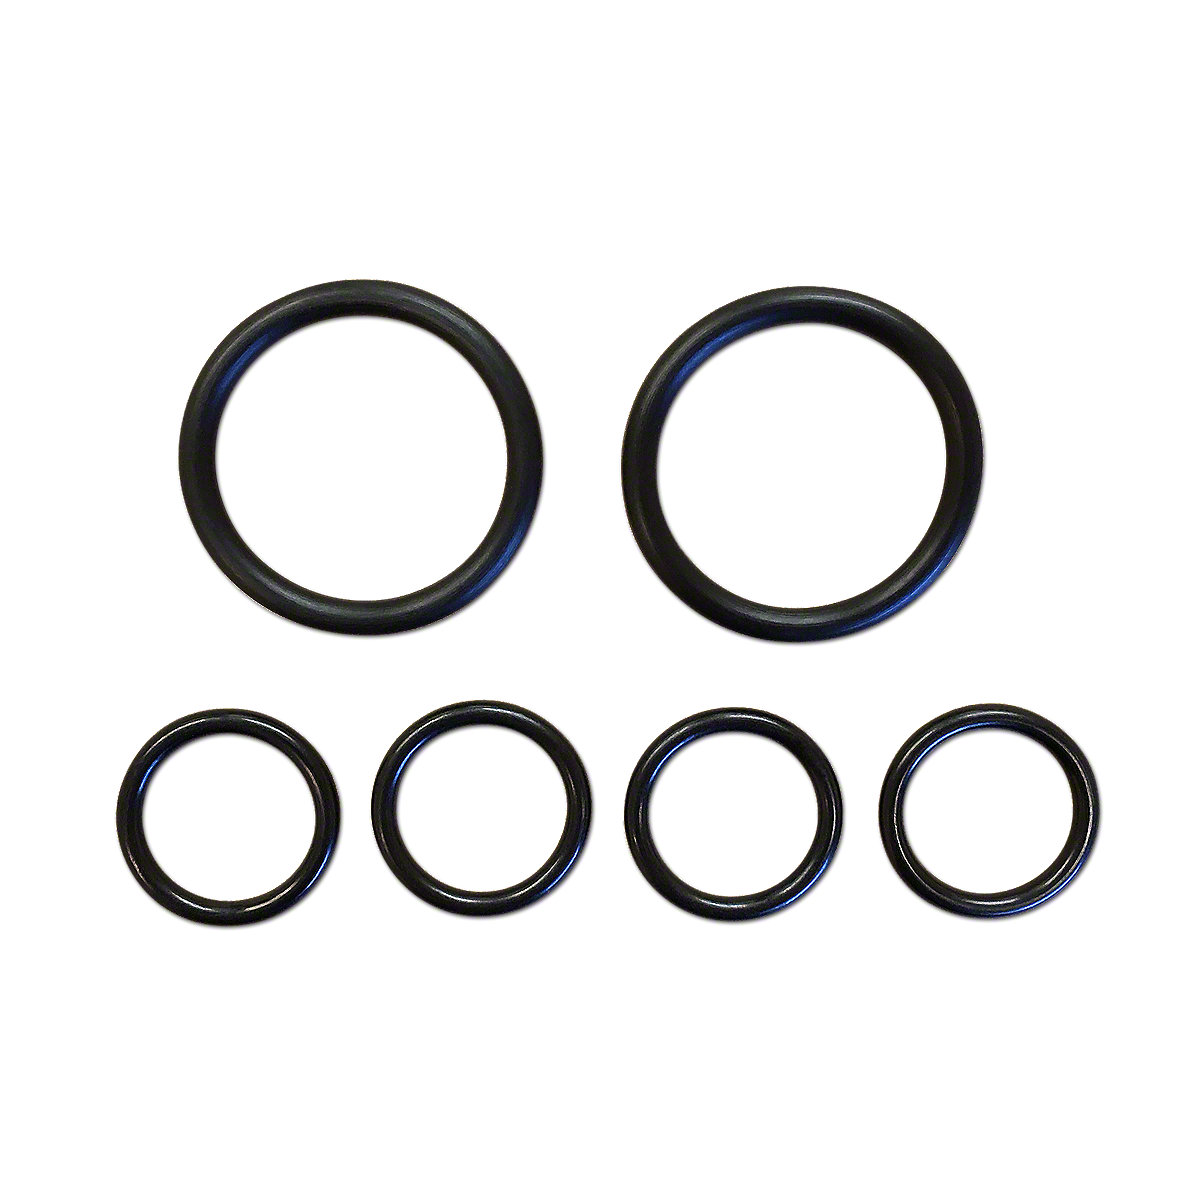 00006 likewise Viewit also JDS3510Hydraulic Powr Trol Or Breakaway Coupler O Ring Kit further Rx8 Parts List 180388 moreover 400731853636. on ford tractor parts shop part